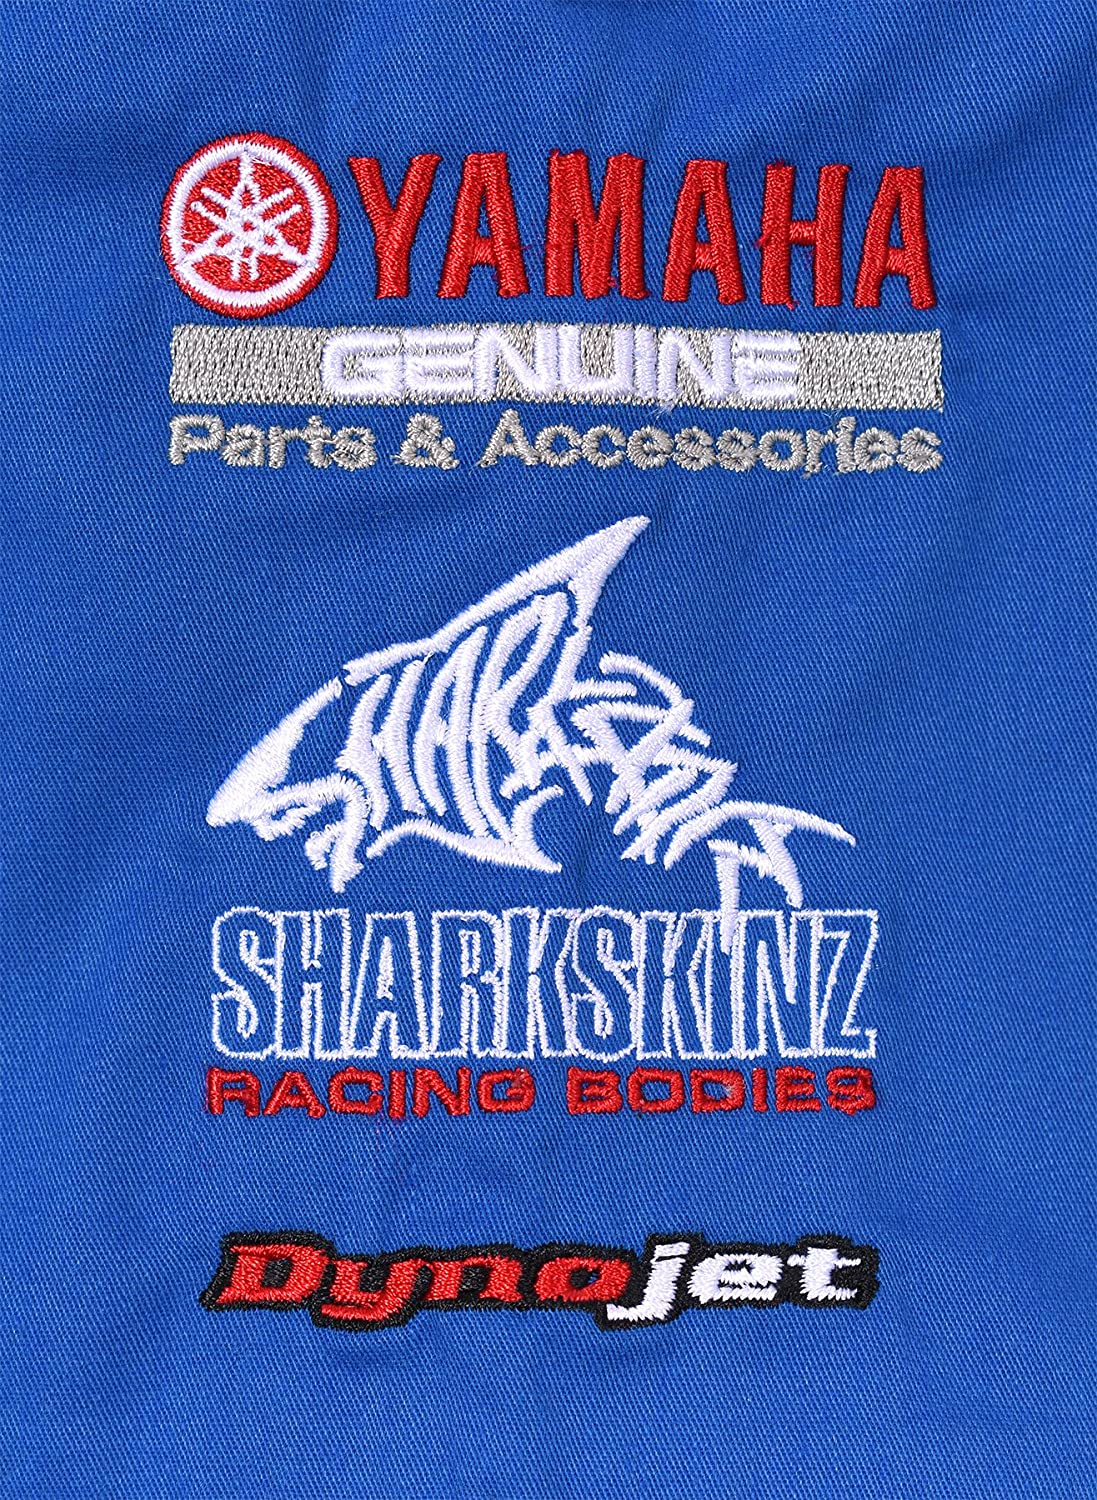 JH DESIGN GROUP Womens Yamaha Racing Embroidered Crew Shirts in Blue /& Red YAM607RAC0